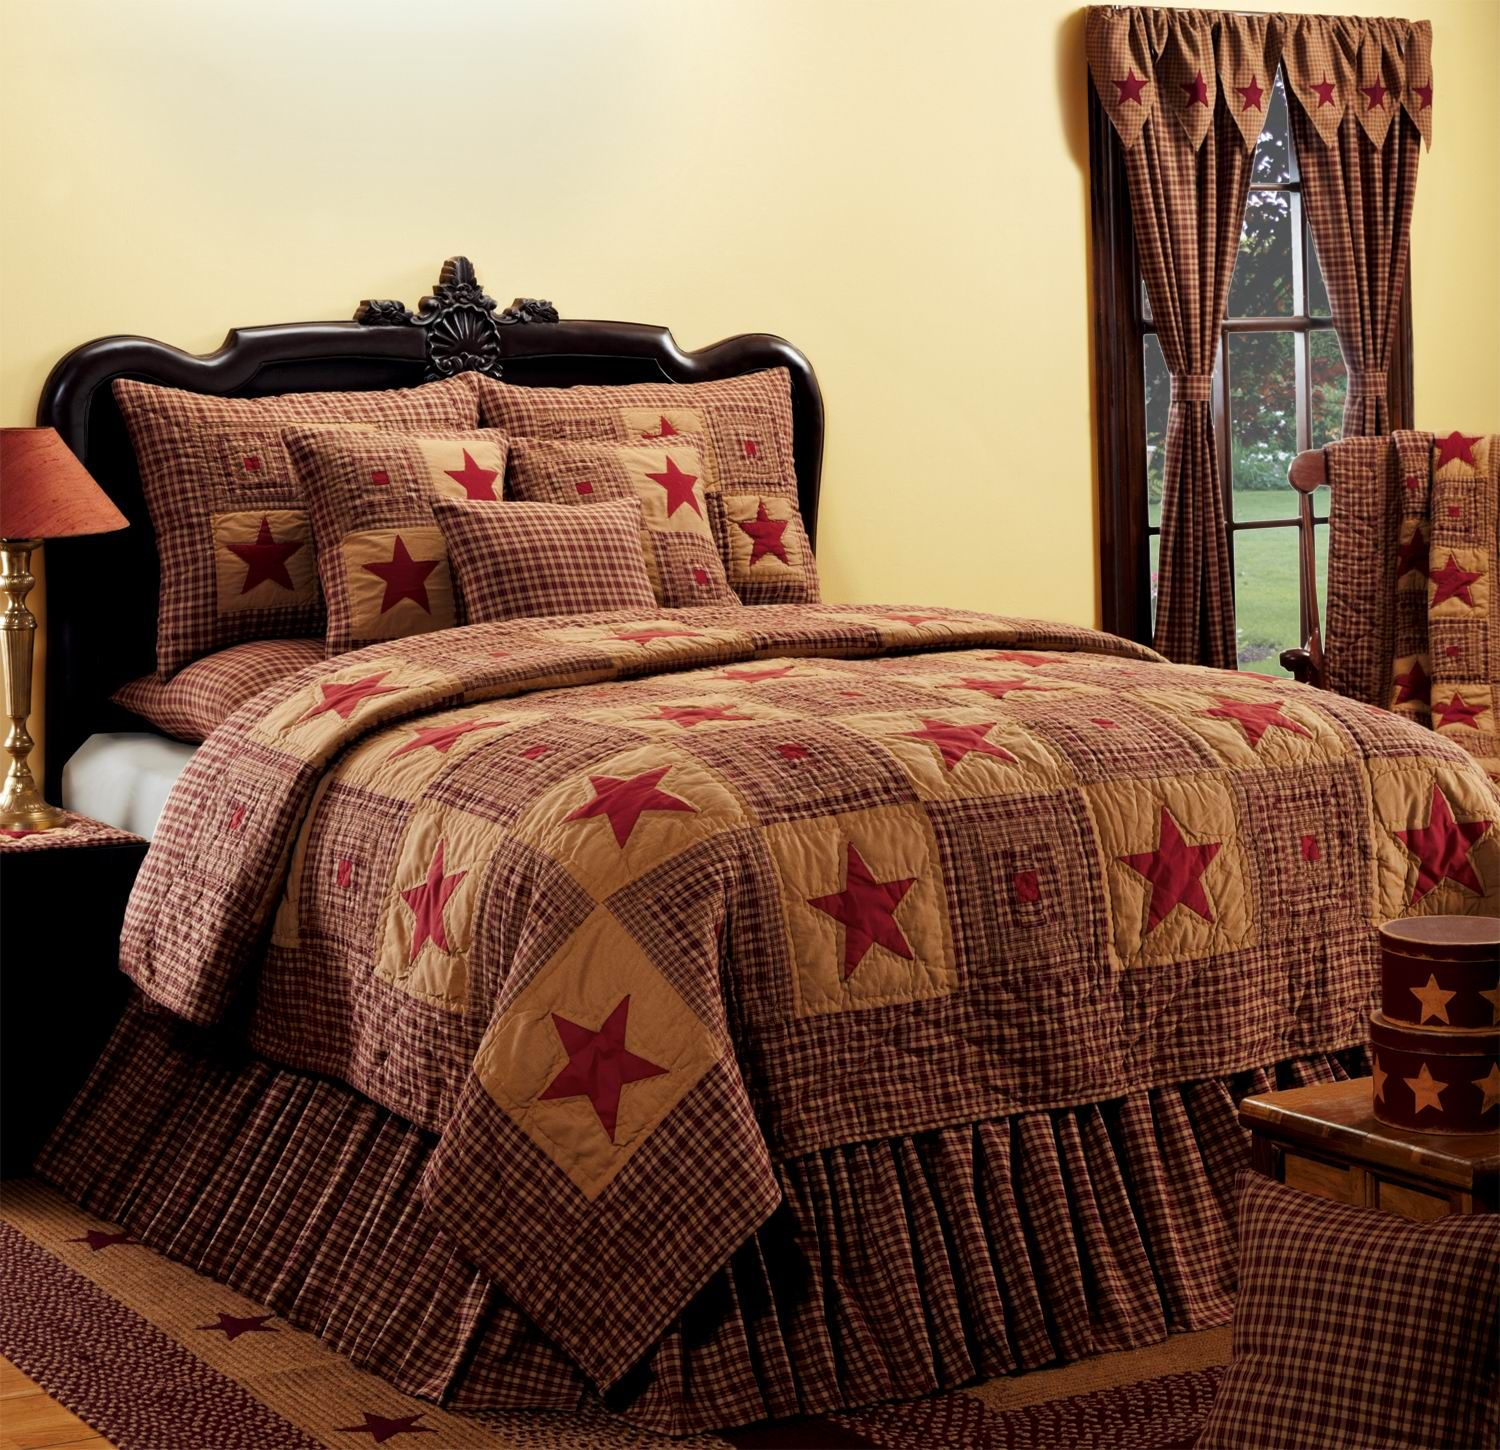 curtains bed bedding available for ideal pheasant matching pin home are tartan country with also a